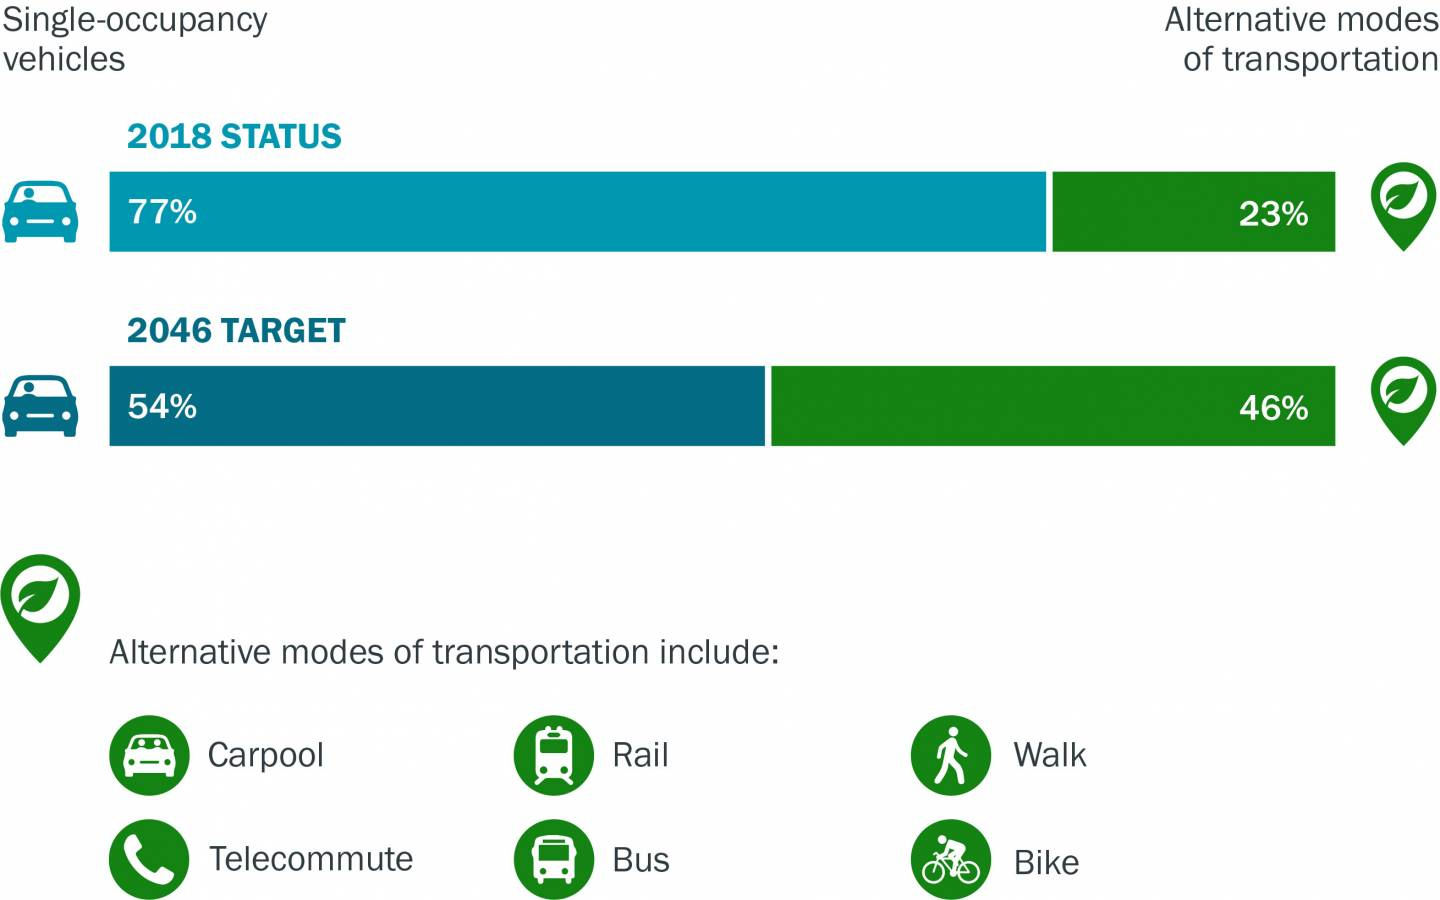 Graphic depicting sustainability efforts through transportation: A bar graph shows that in 2018 77% transportation is single occupancy vehicles and 23% alternative modes of transportation. Another bar graph shows a target of 54% single occupancy vehicles and 46% alternative modes of transporation in 2046.